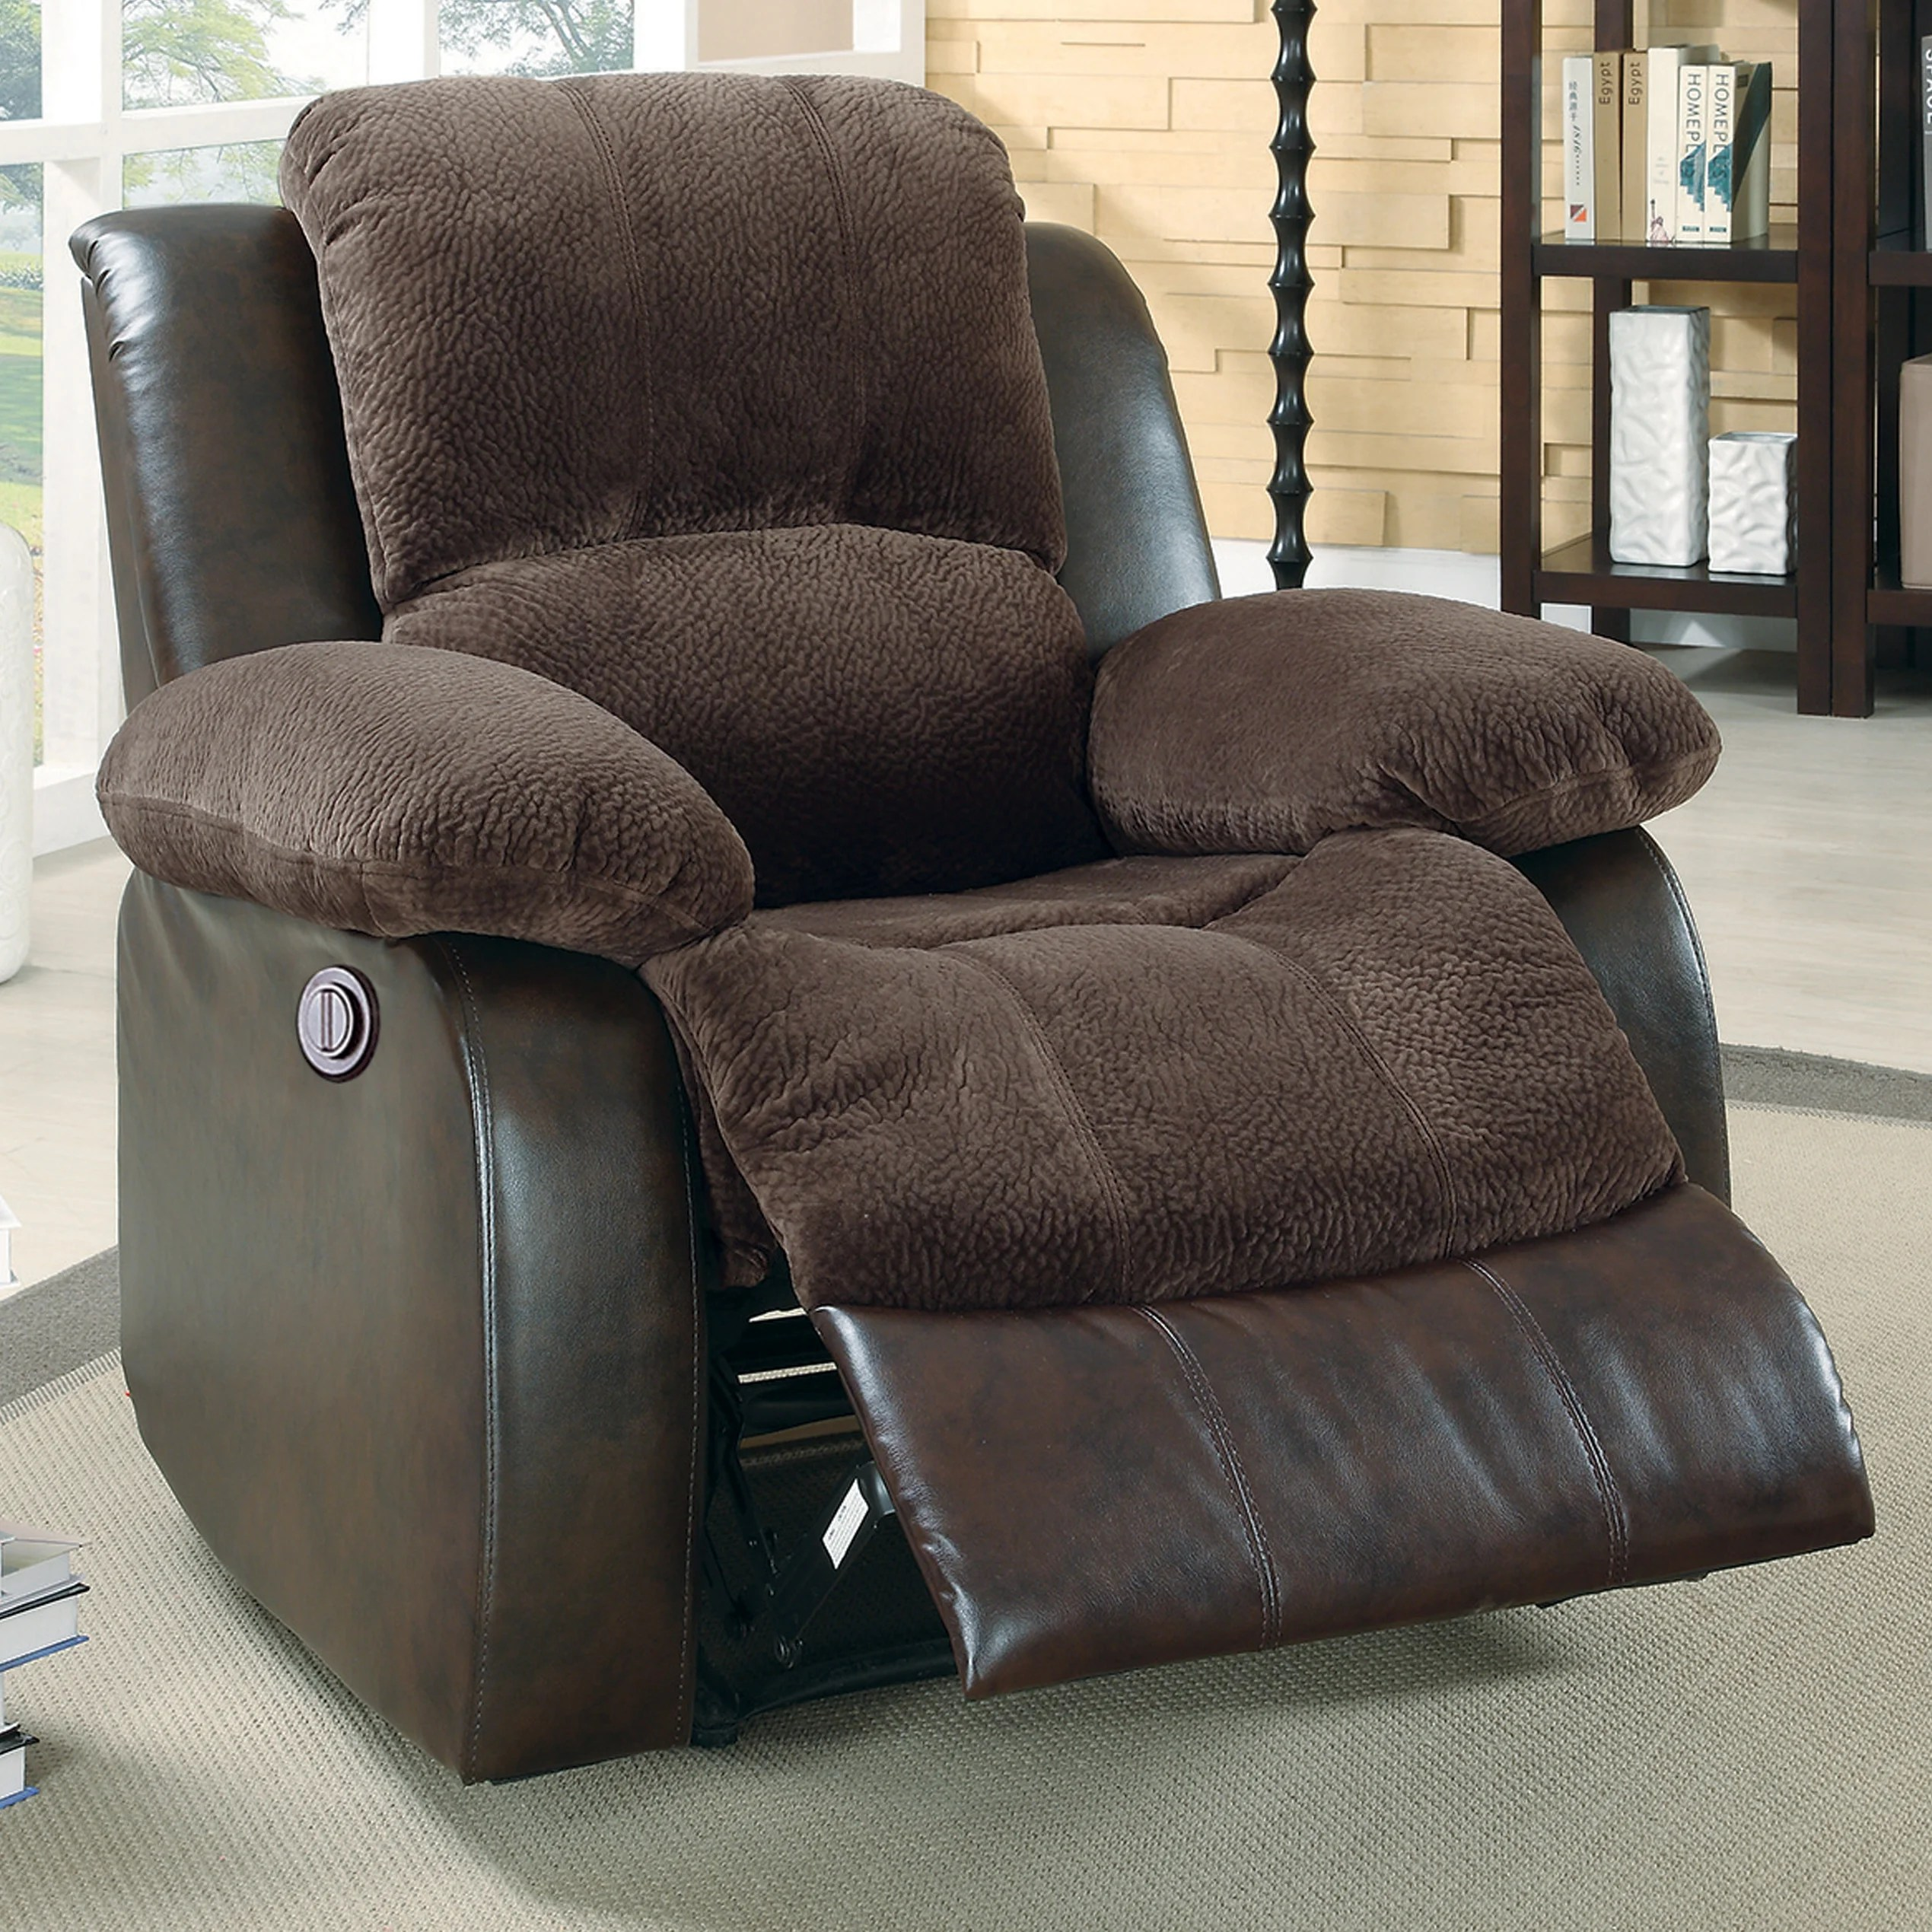 power recliner chairs reviews alabama lawn chair boat andover mills aldreda and wayfair